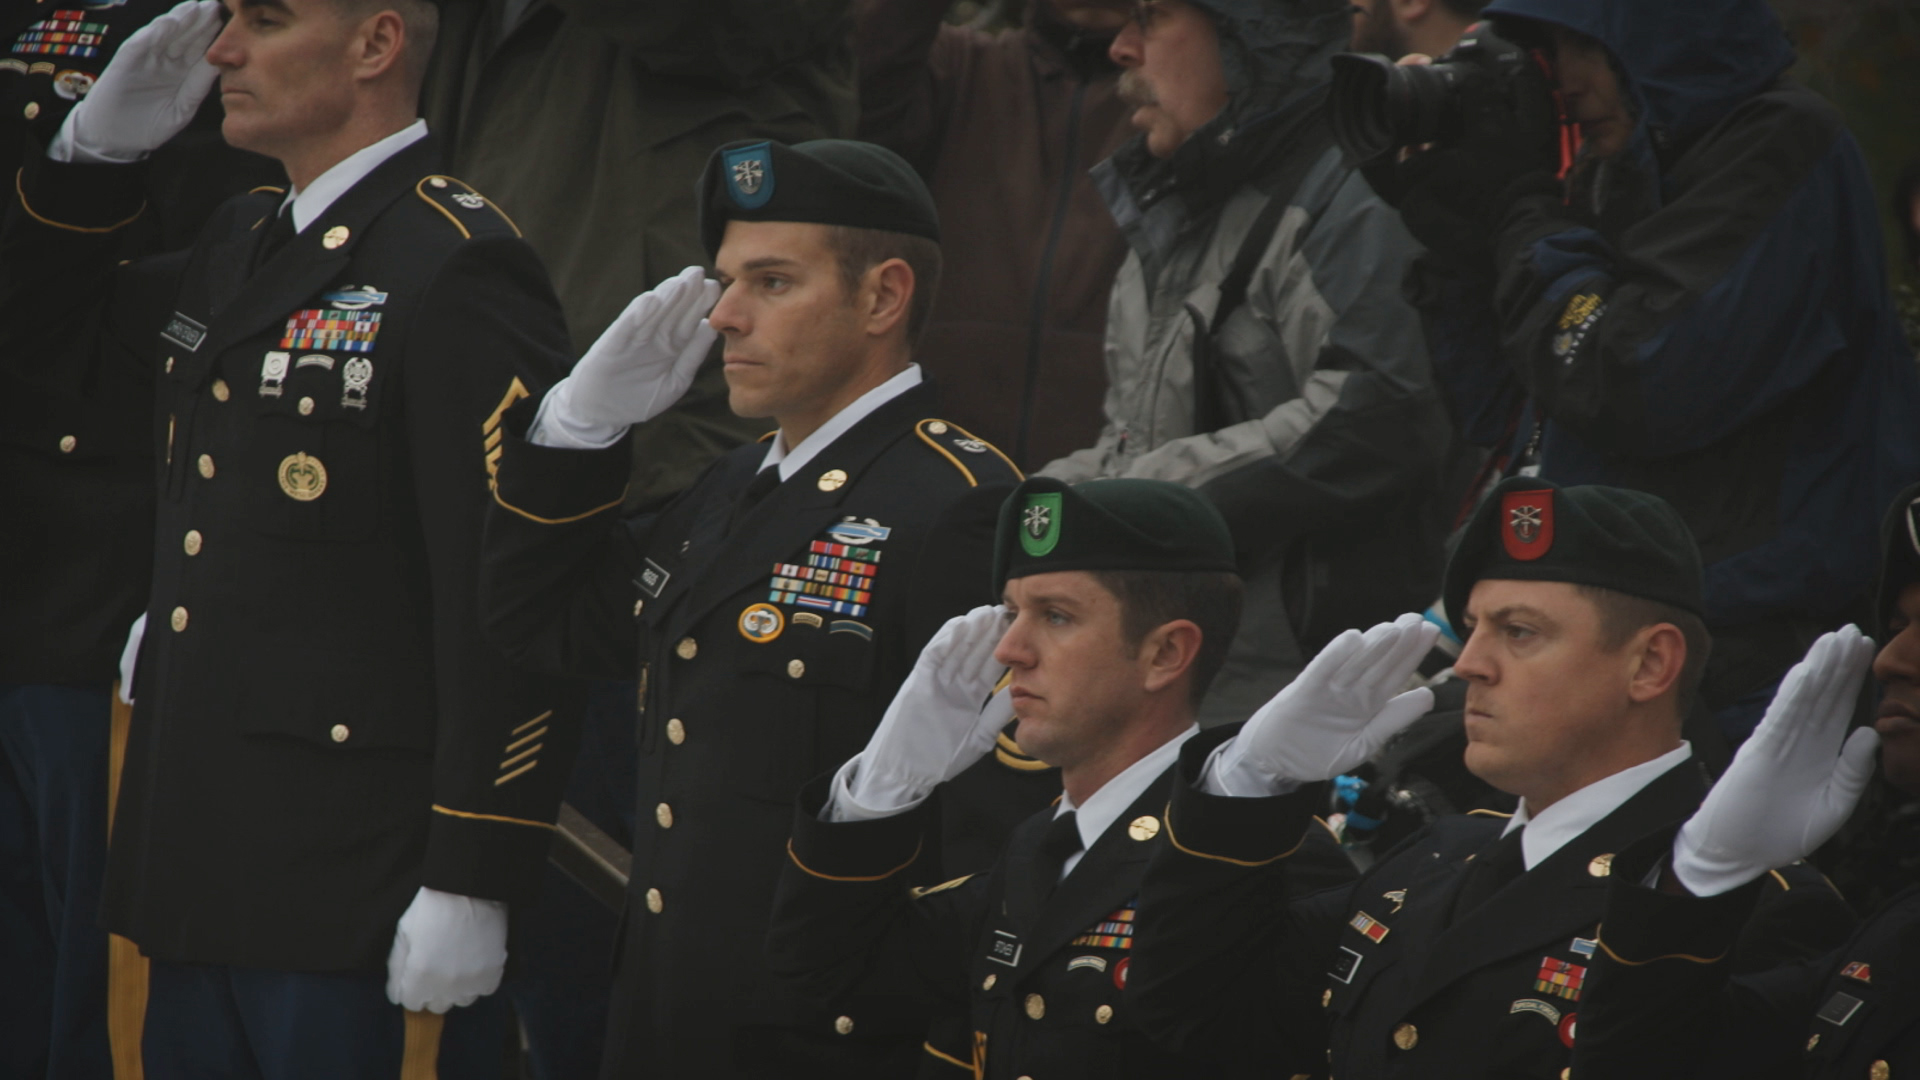 The Green Berets of 7115